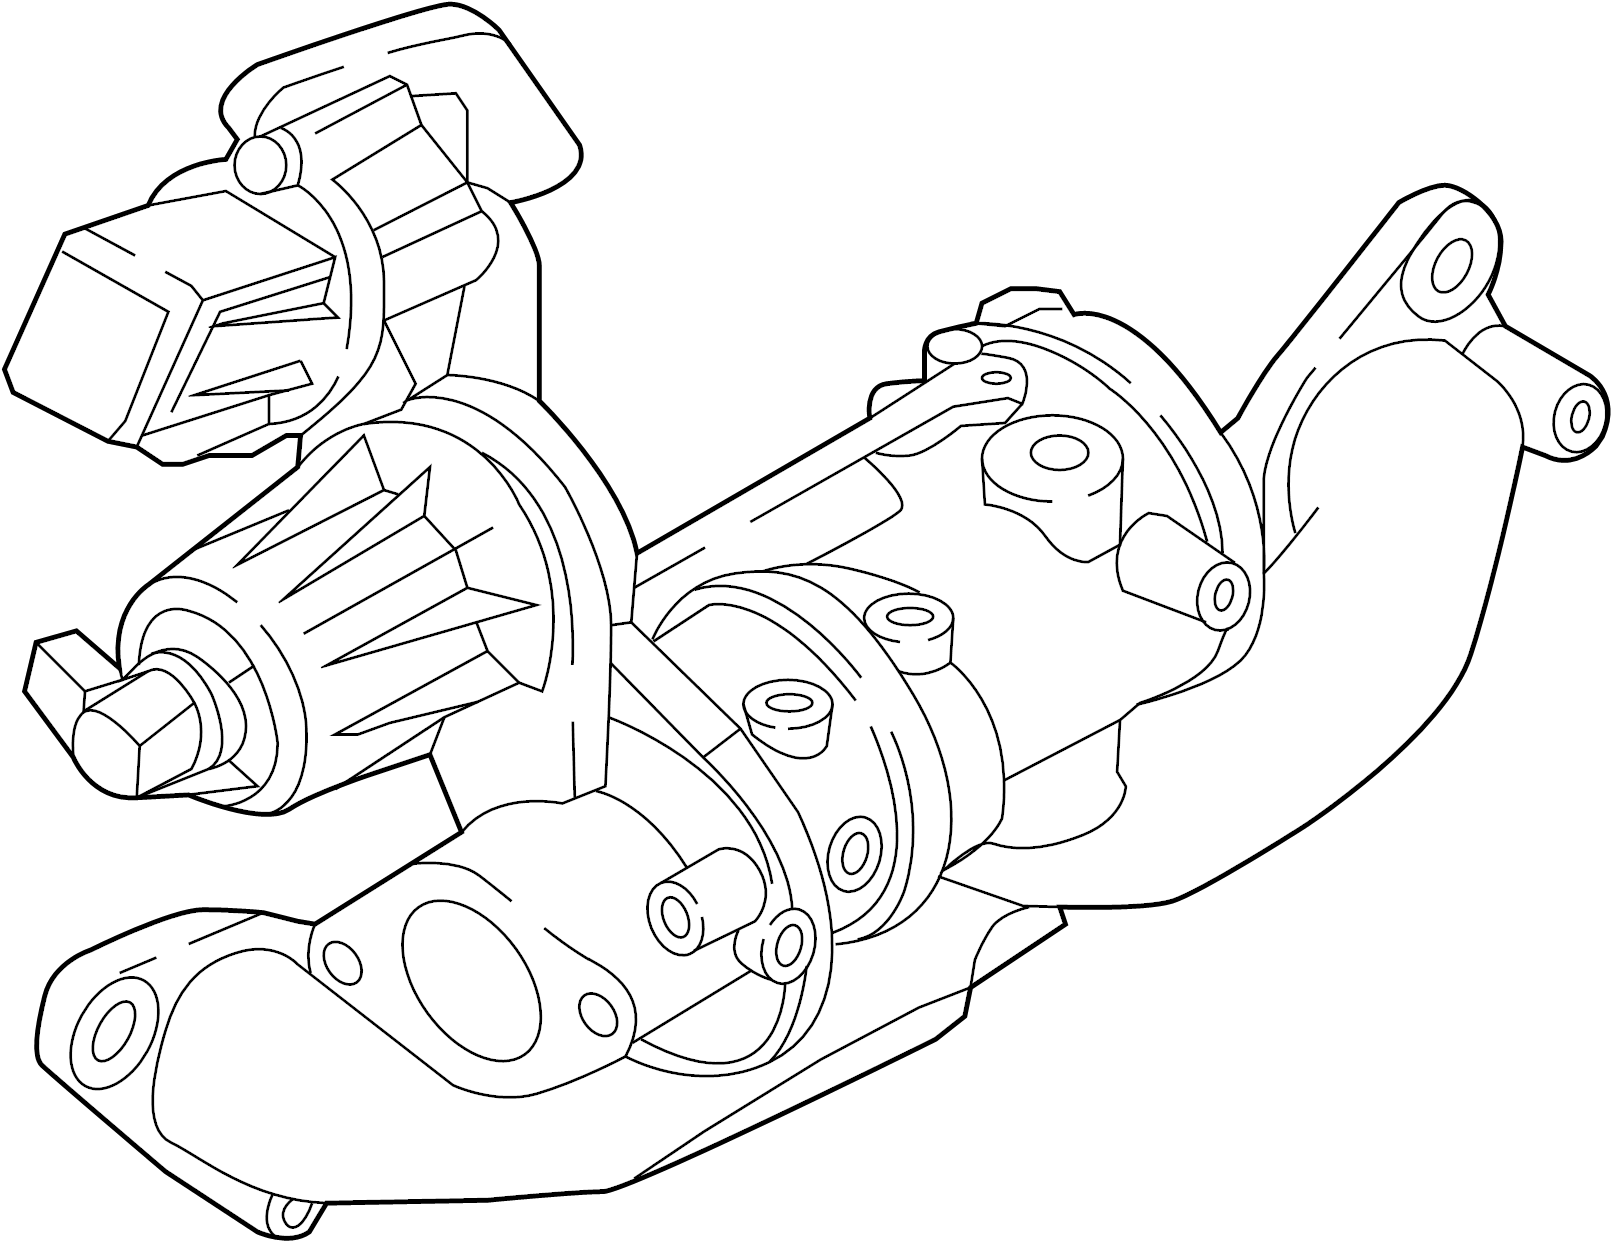 Nissan Sentra Exhaust Manifold Turbo Charger